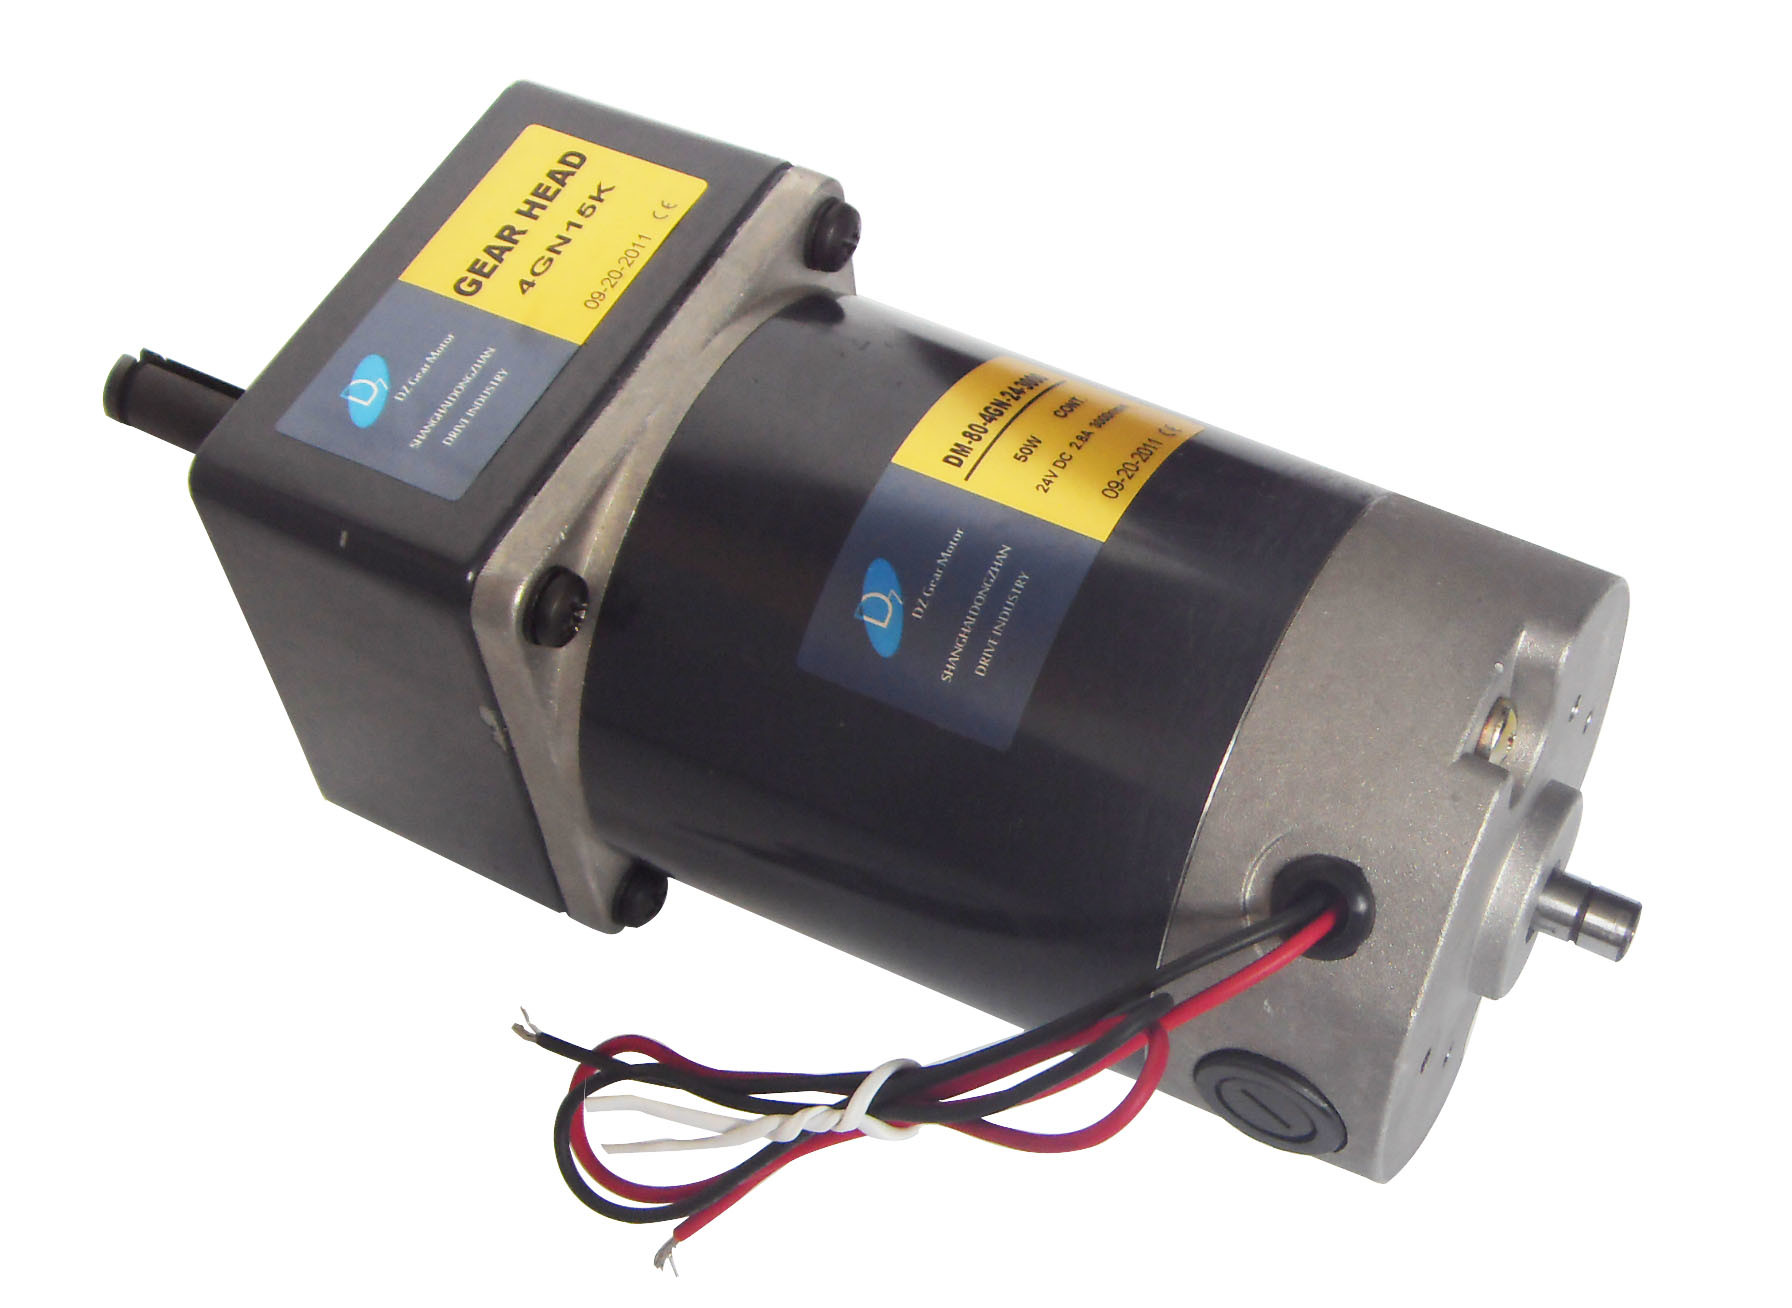 China dc gear motor with encoder photos pictures made for Dc gear motor with encoder